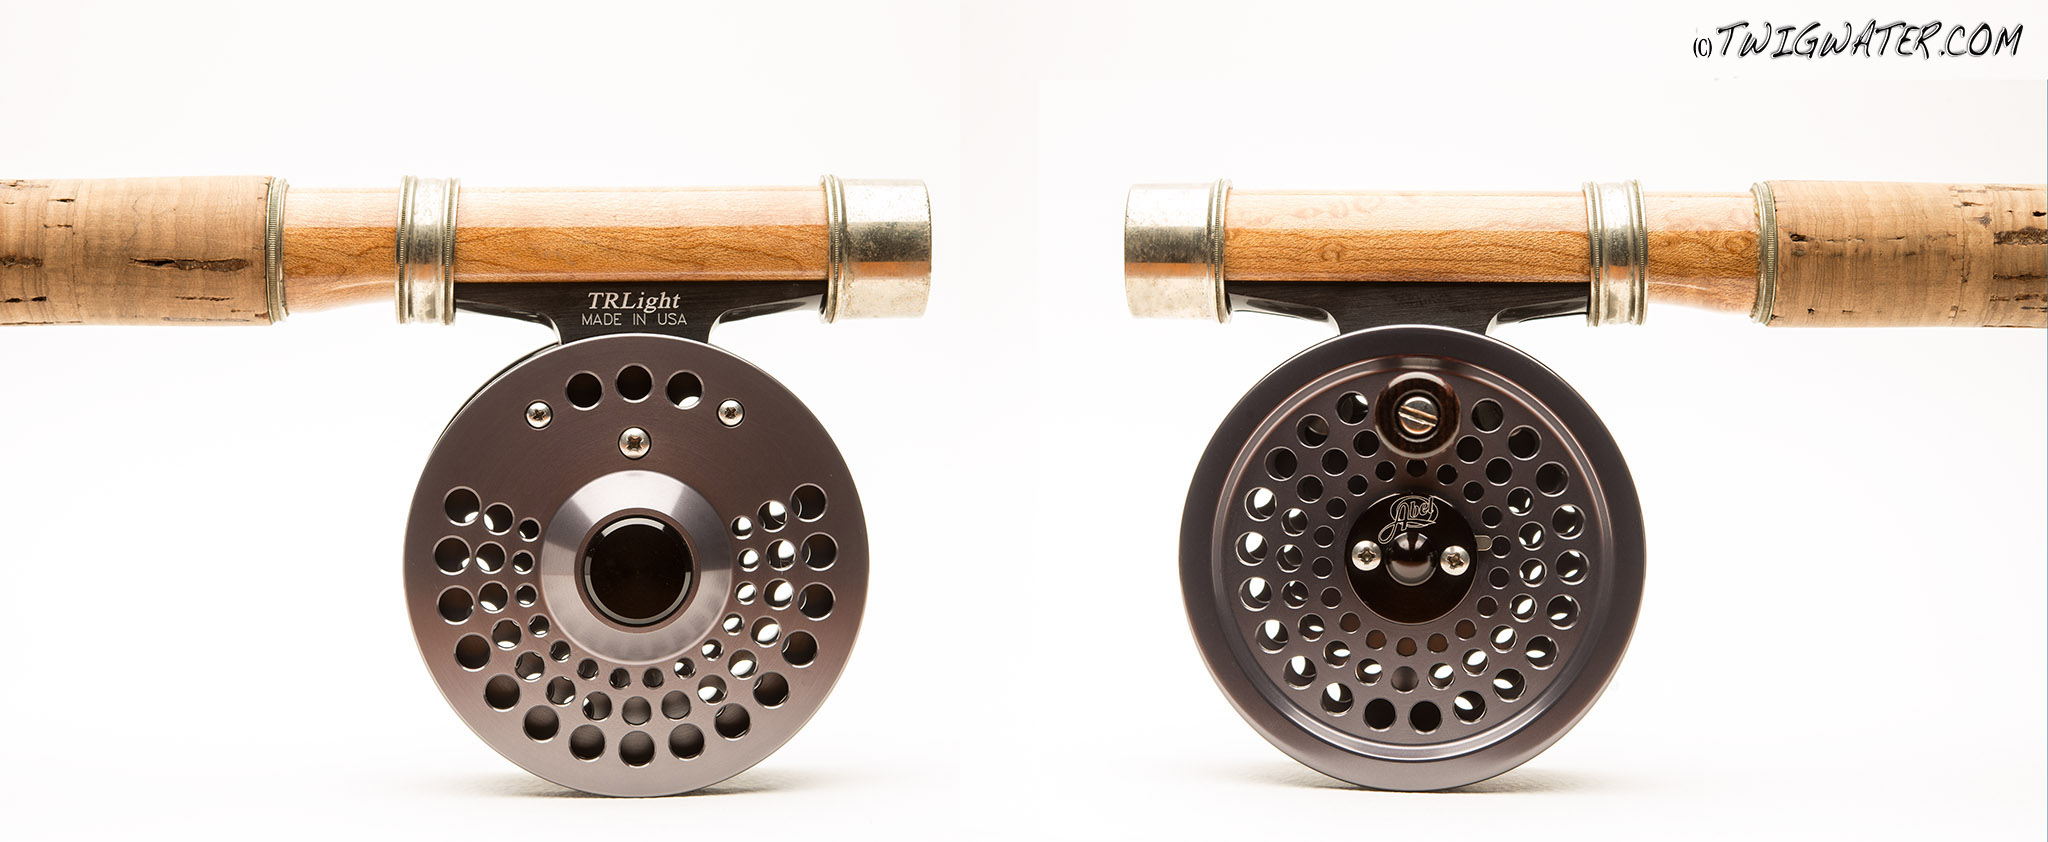 Abel TR Light fly reel review